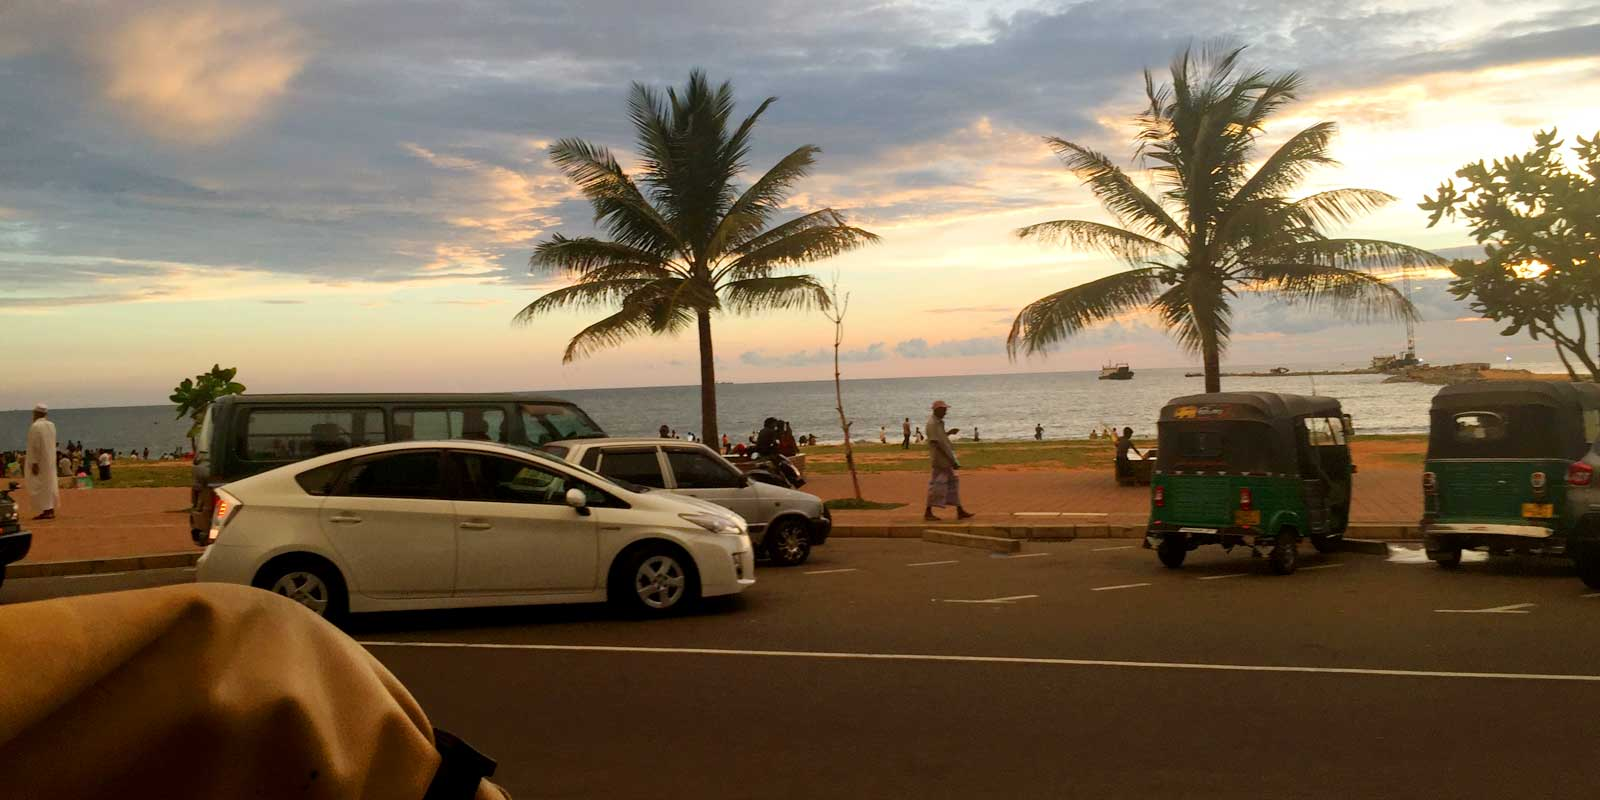 Hire a private car or summon an Uber in Sri Lanka. Or how about an open air tuk tuk? Come on over to this post to learn about how you can get around in Sri Lanka without renting a car.